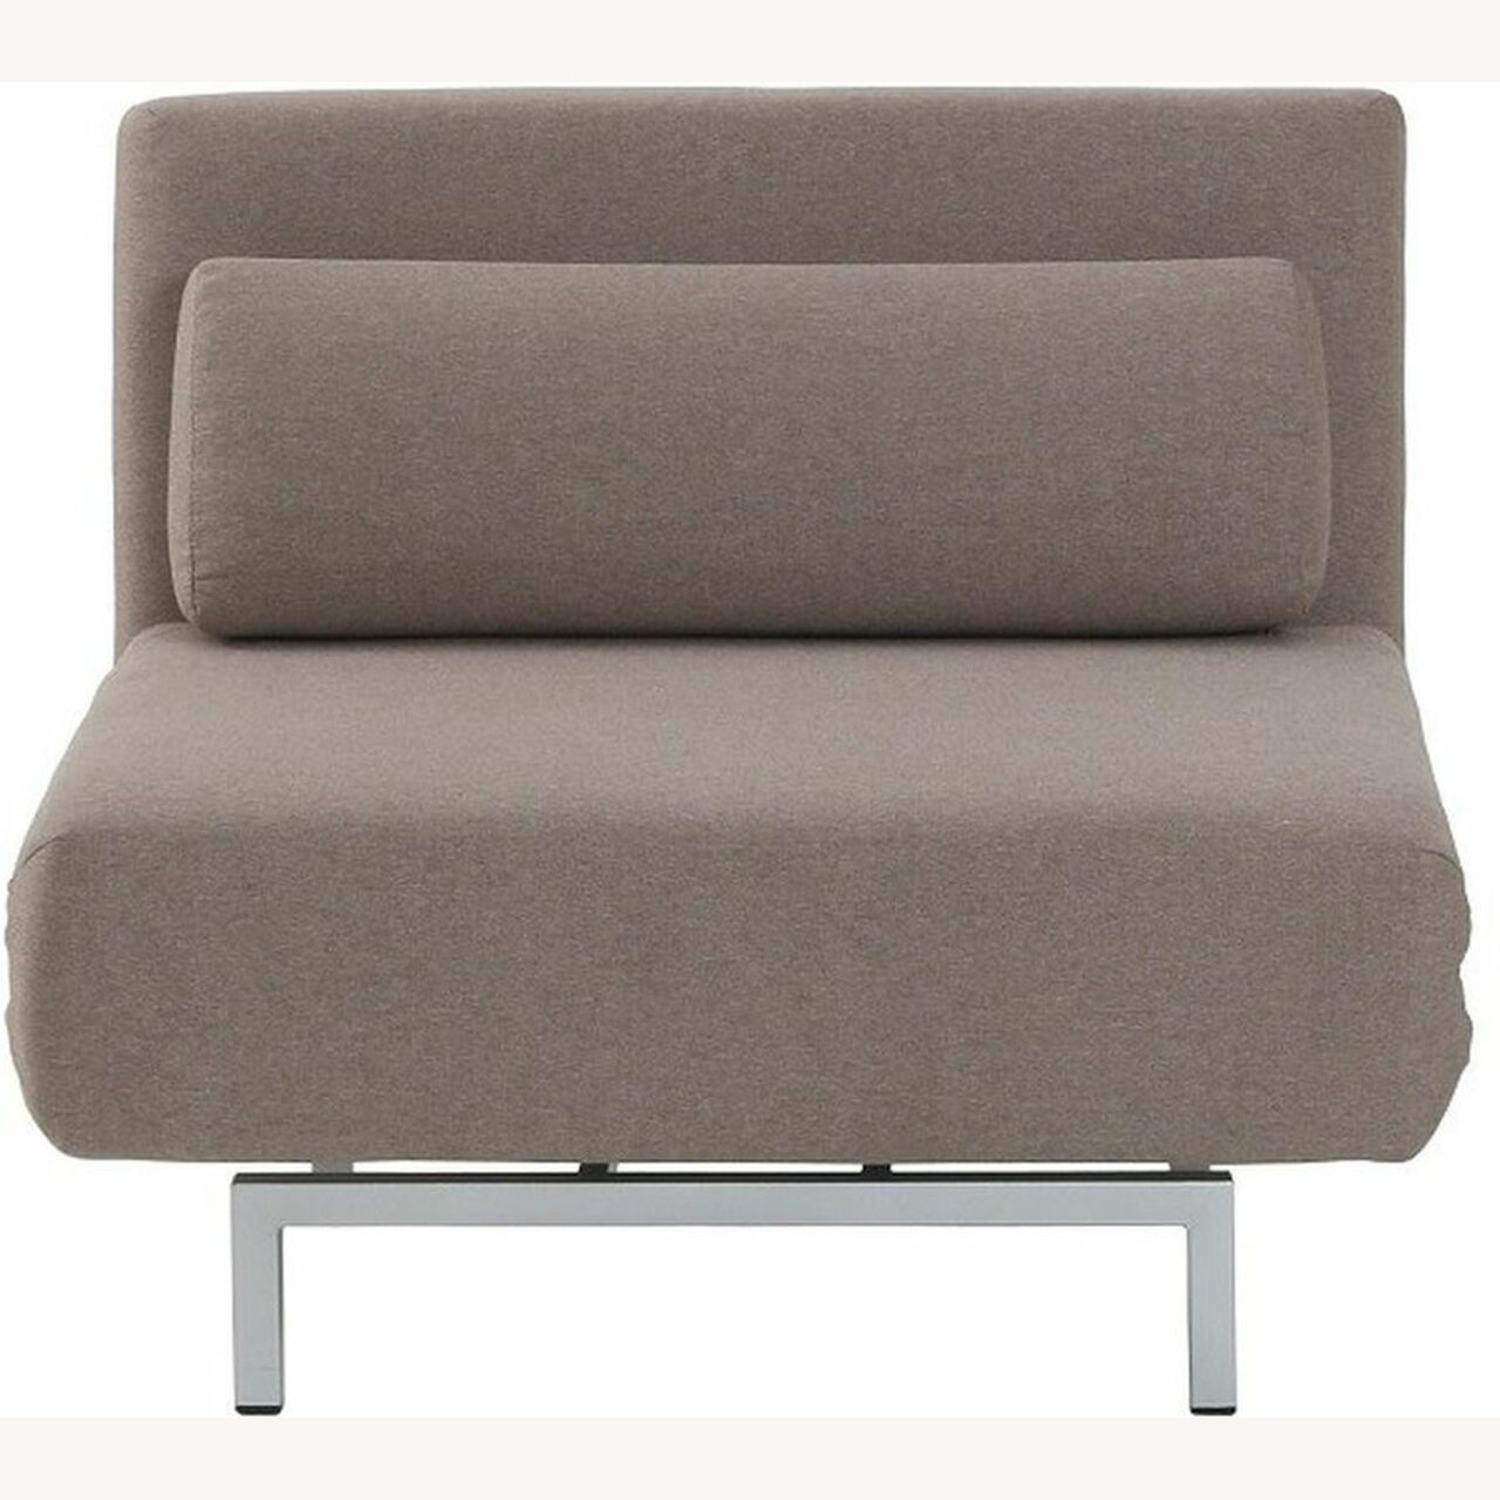 Convertible Sofa Bed In Beige Fabric Upholstery - image-2